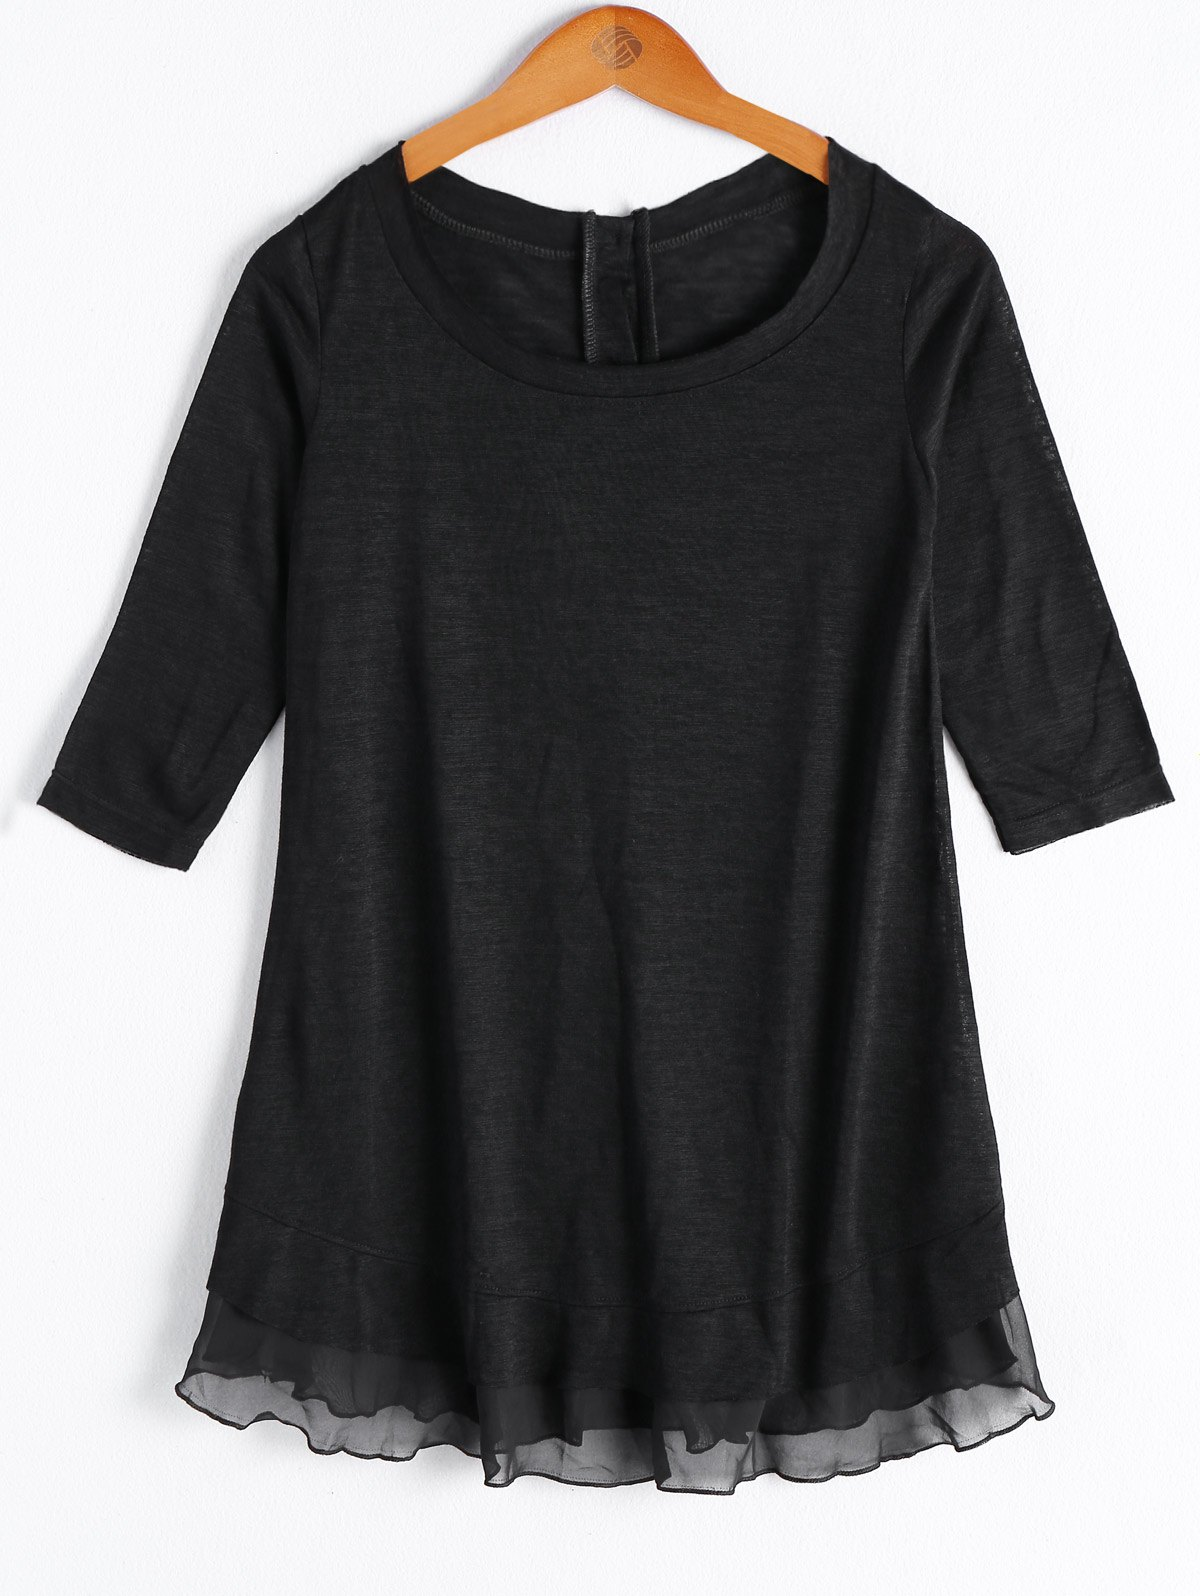 Casual Women's Solid Color Scoop Neck 3/4 Sleeve Button Flounce Blouse - BLACK M